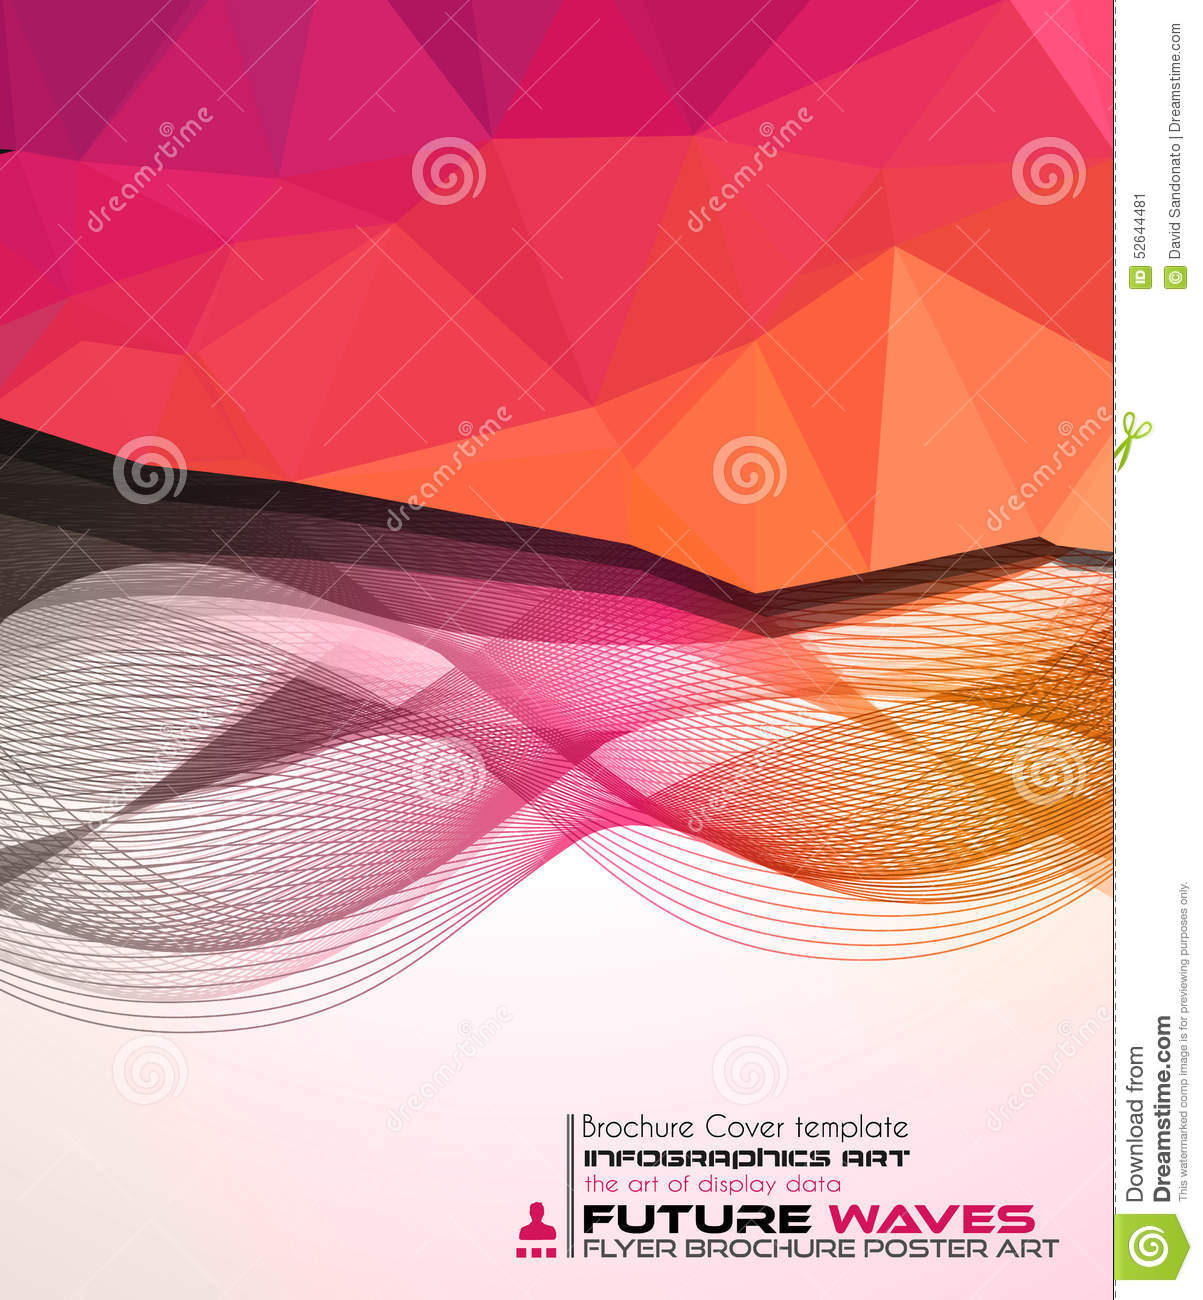 Abtract Waves Background For Brochures And Flyers Design Stock ...